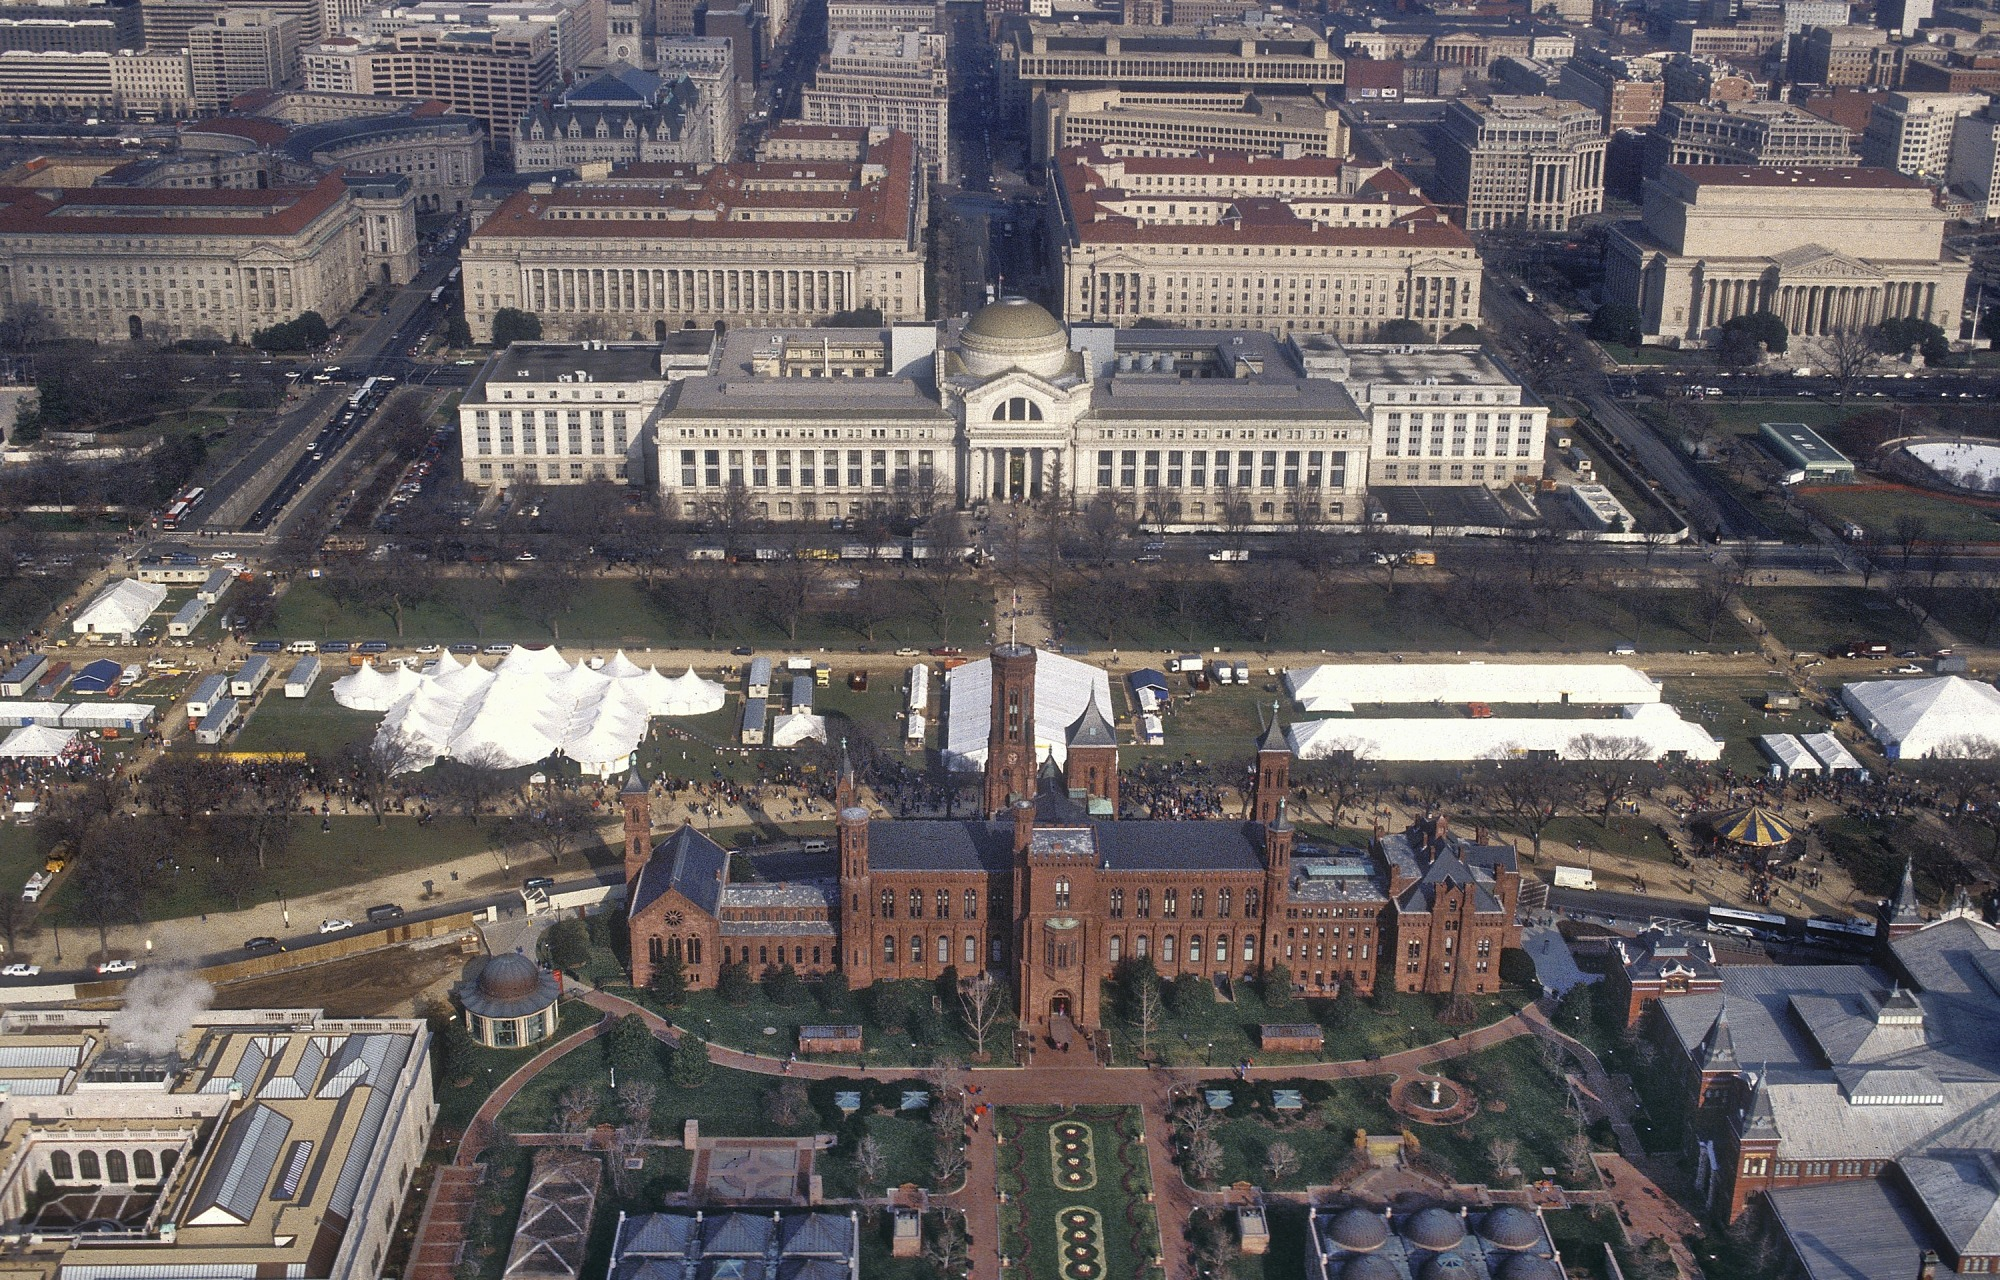 William J. Clinton Presidential Inauguration, aerial view of the National Mall, (depicting Quadrangle Building, Smithsonian Institution Building [Castle], and National Museum of Natural History), 1993